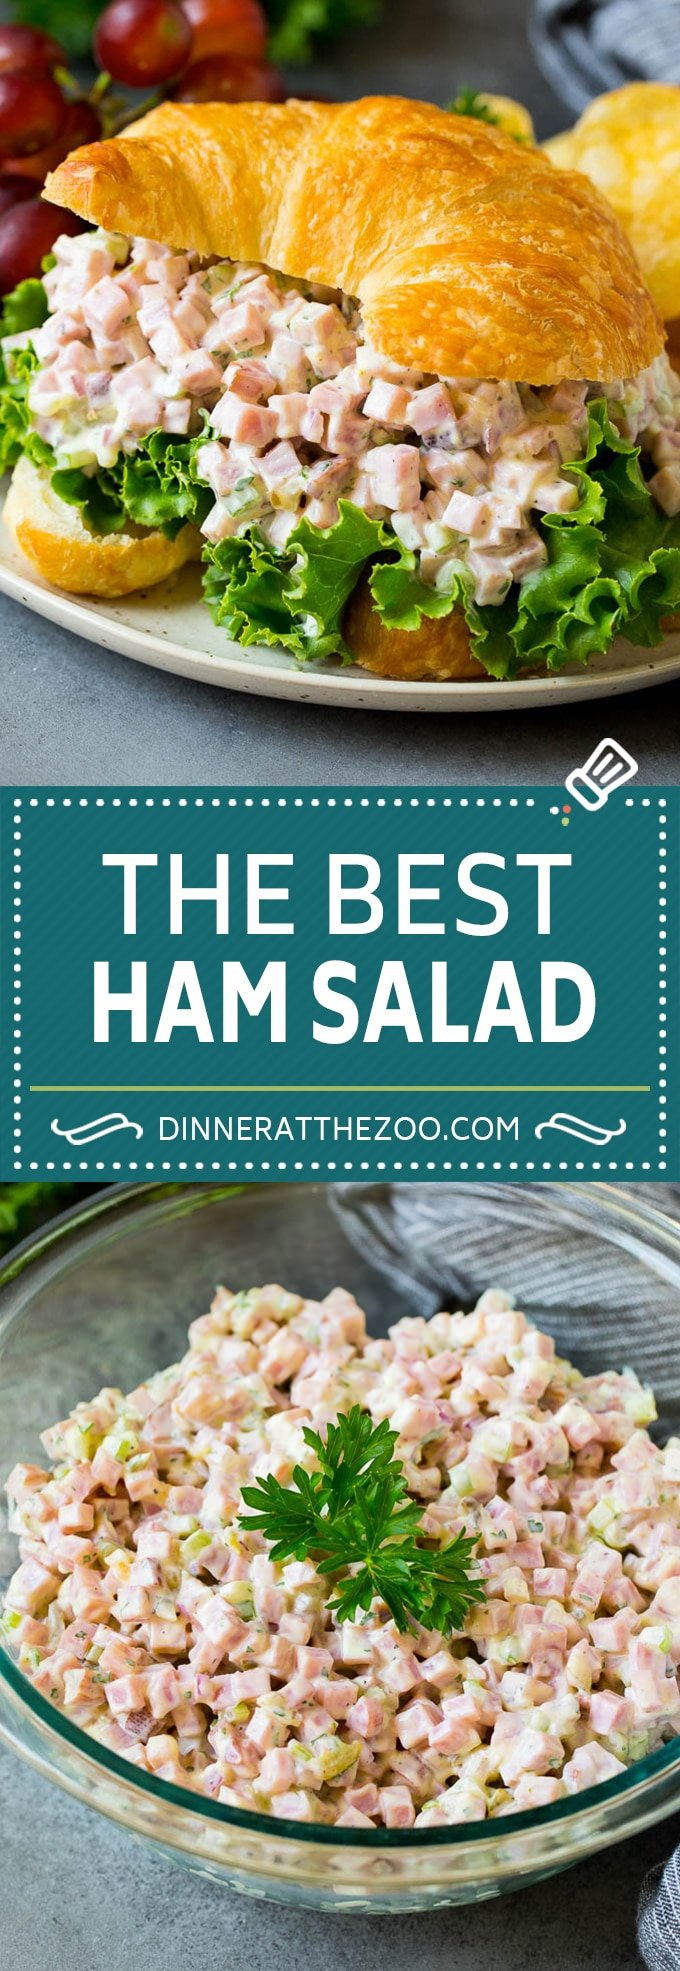 This ham salad is a blend of finely diced ham, mayonnaise, veggies and seasonings, all mixed together to form a savory and creamy salad.